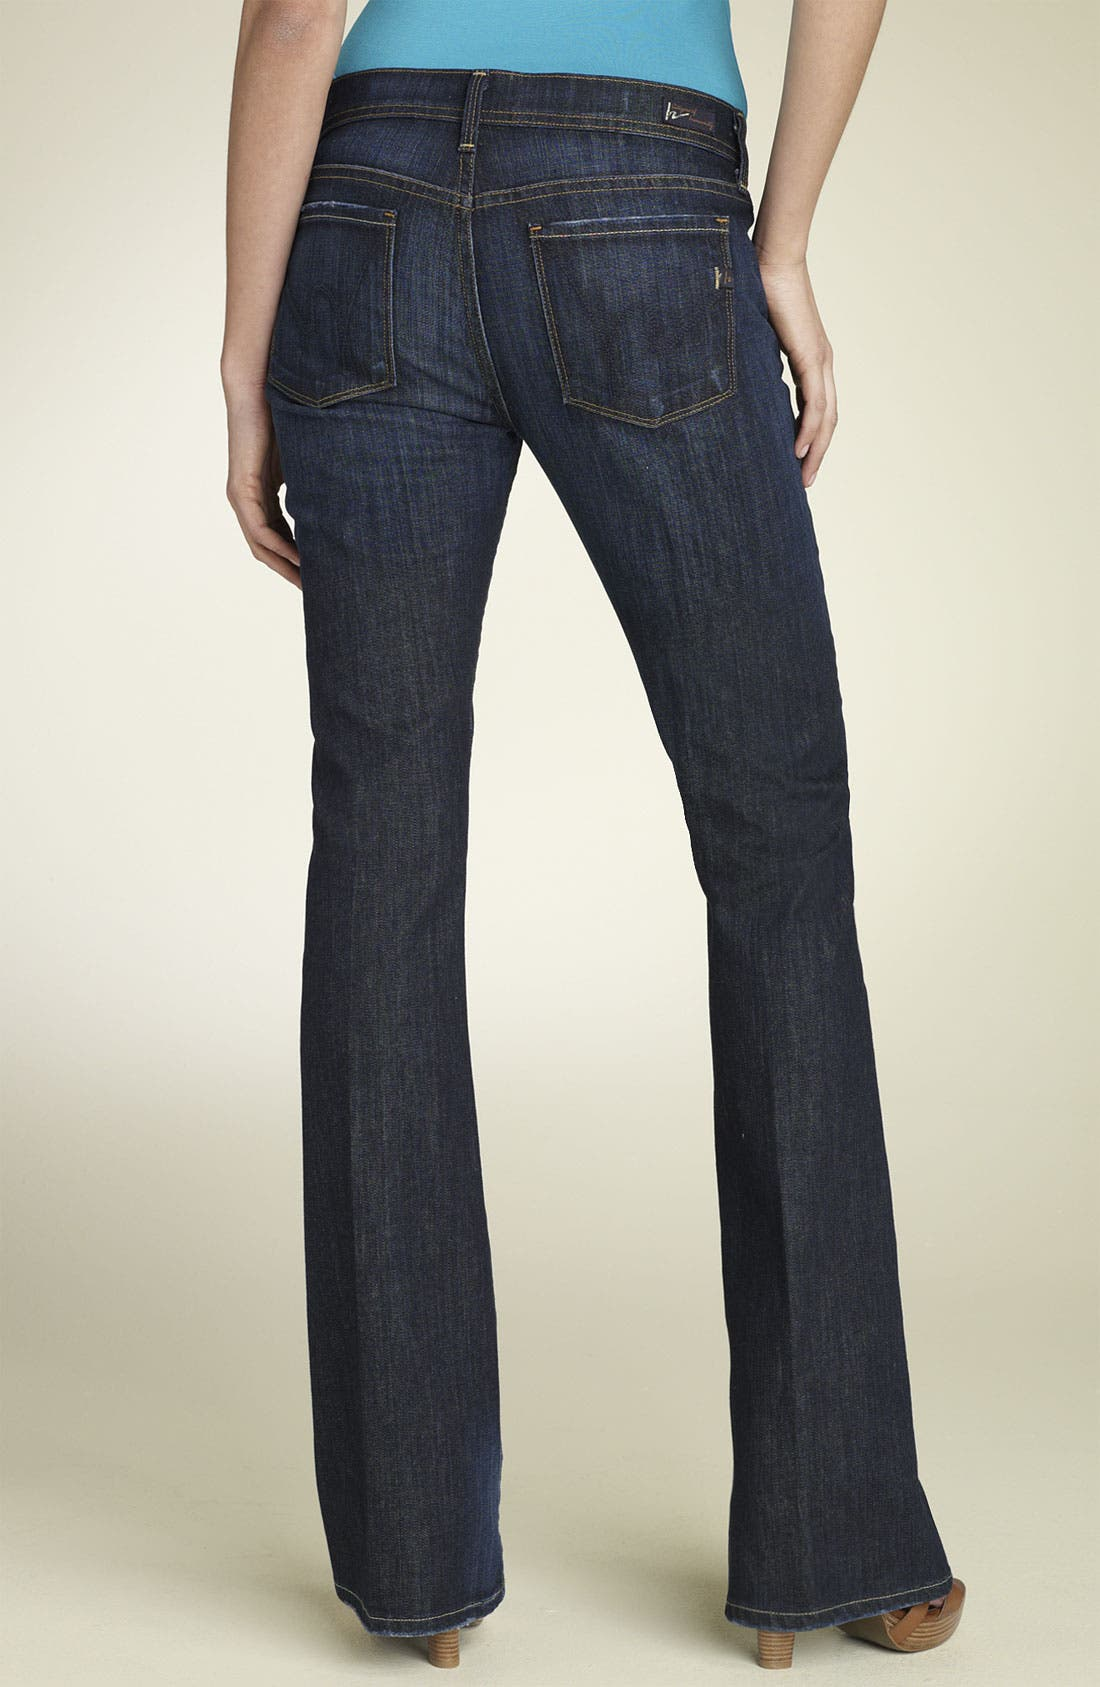 Main Image - Citizens of Humanity 'Ingrid' Stretch Jeans (New Pacific)